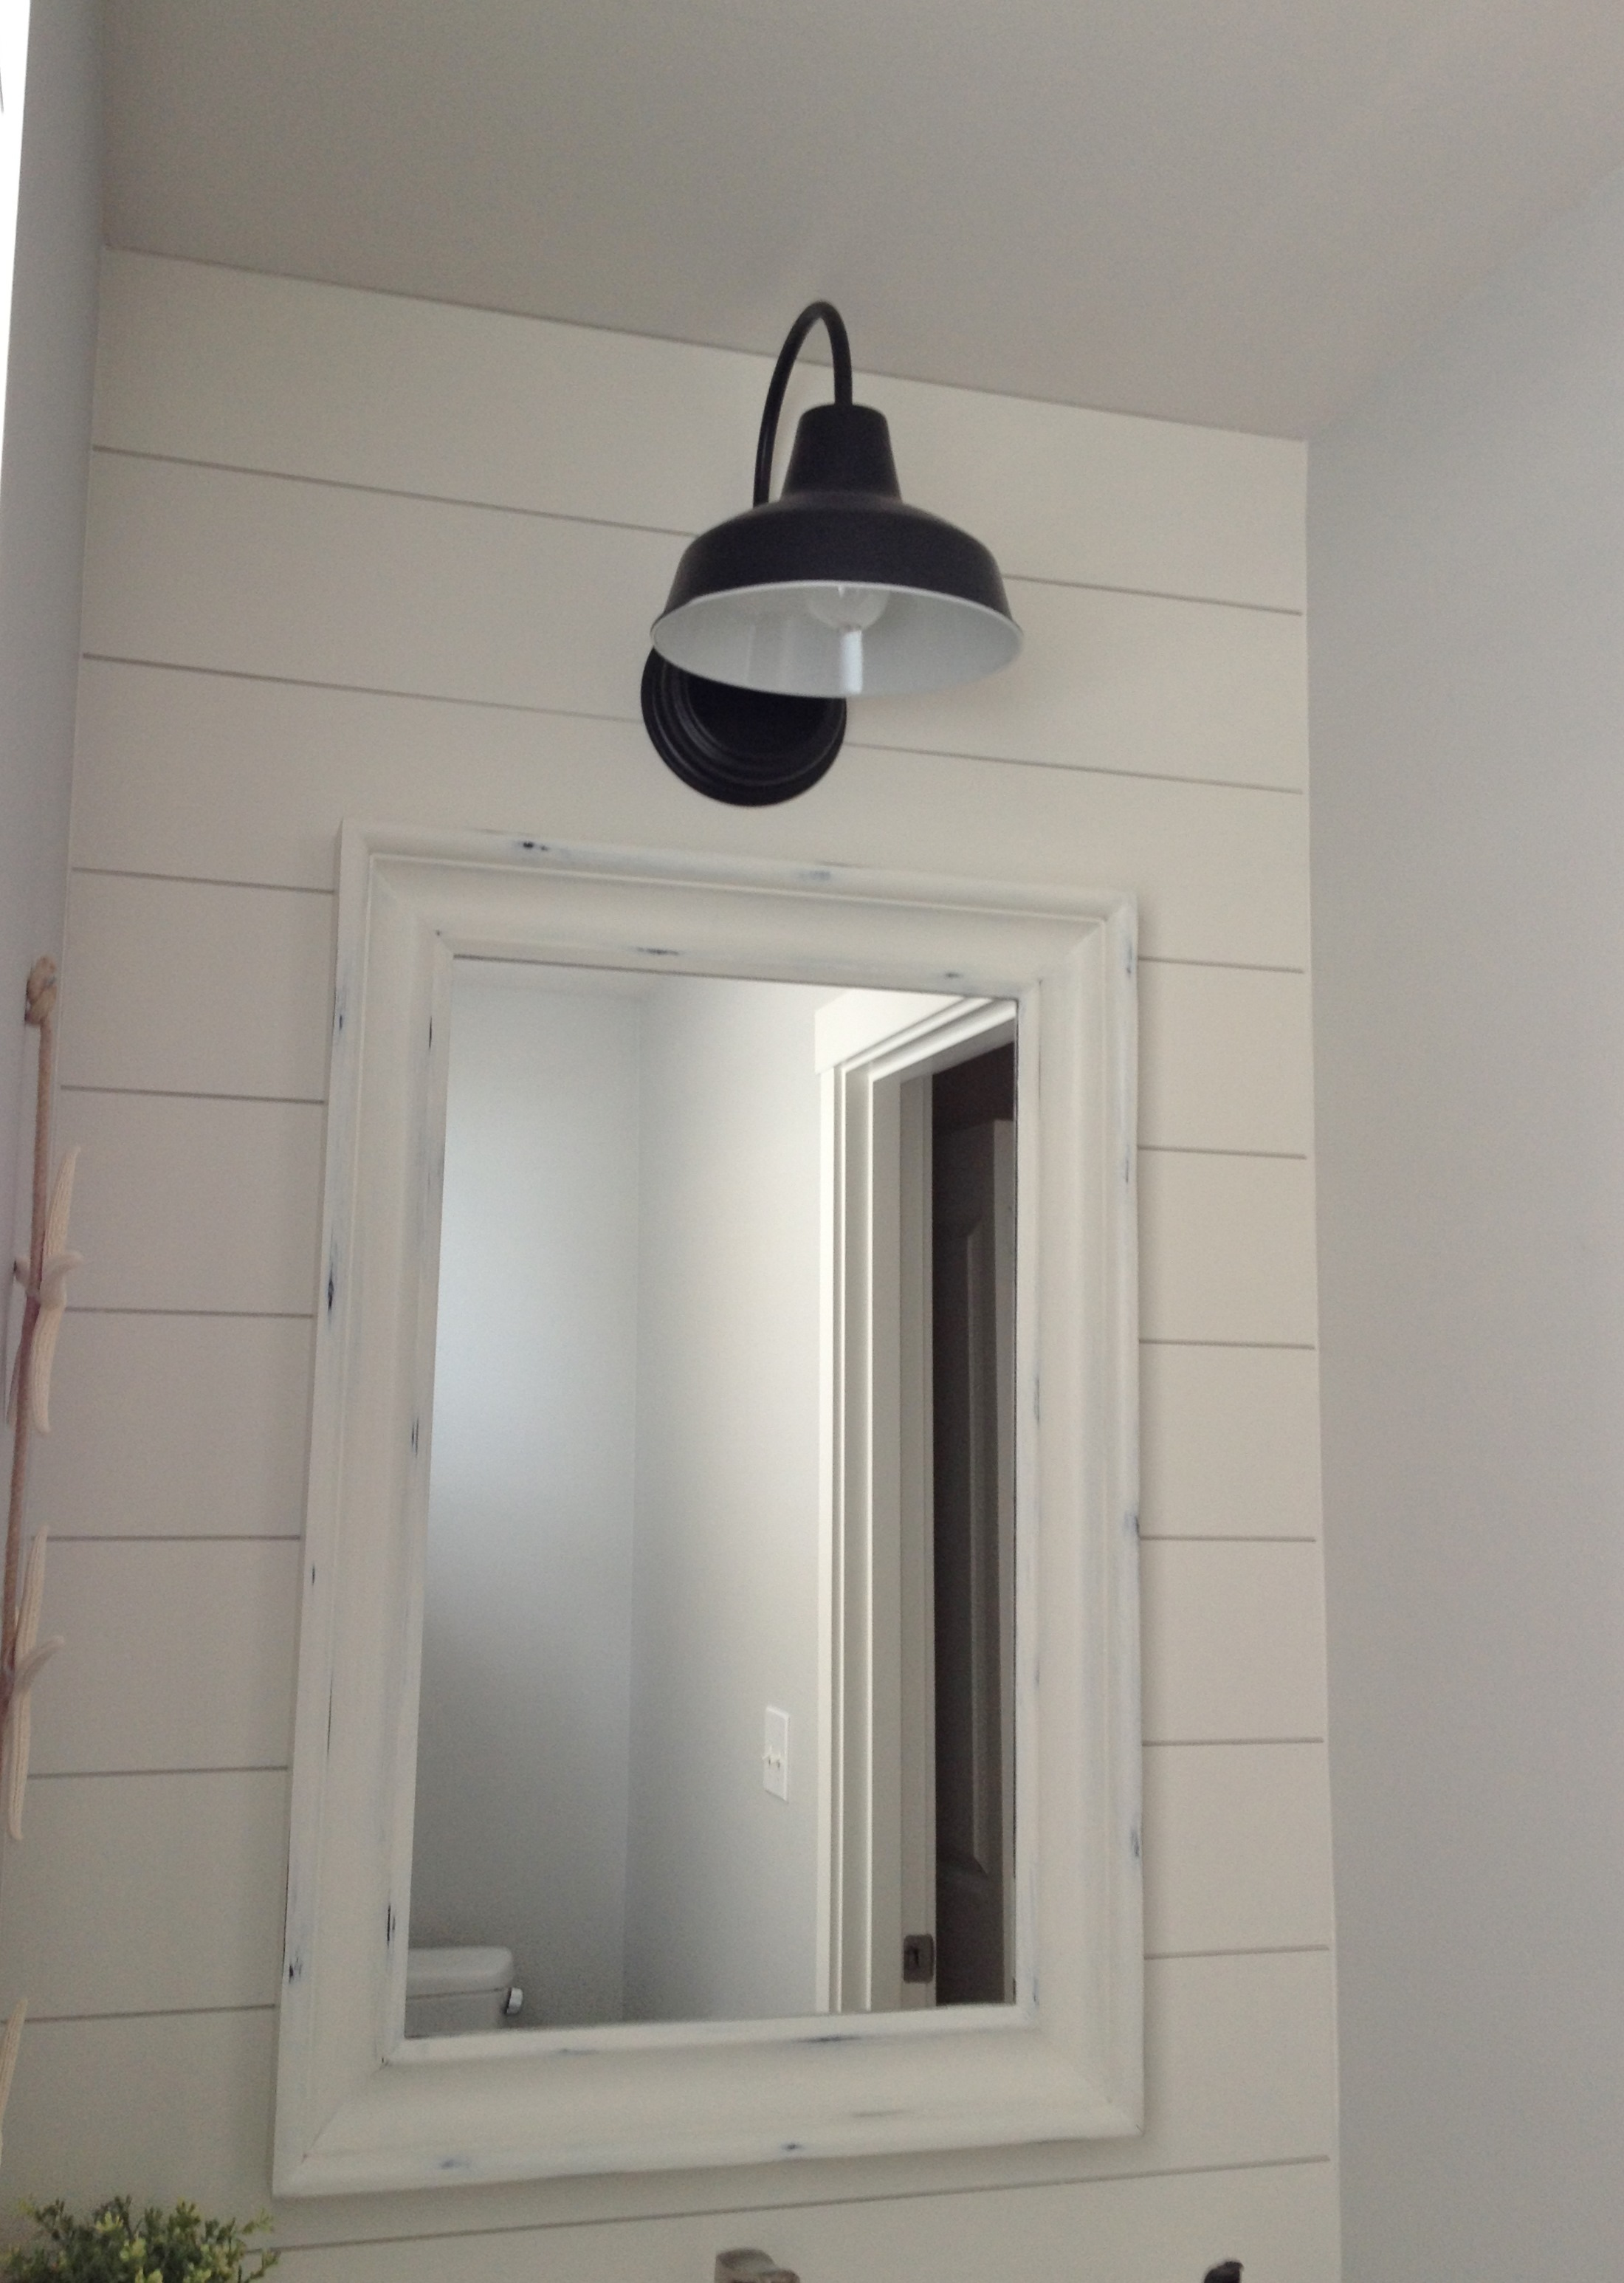 Barn wall sconce lends farmhouse look to powder room remake blog featured customer barn wall sconce lends farmhouse look to powder room remake aloadofball Image collections